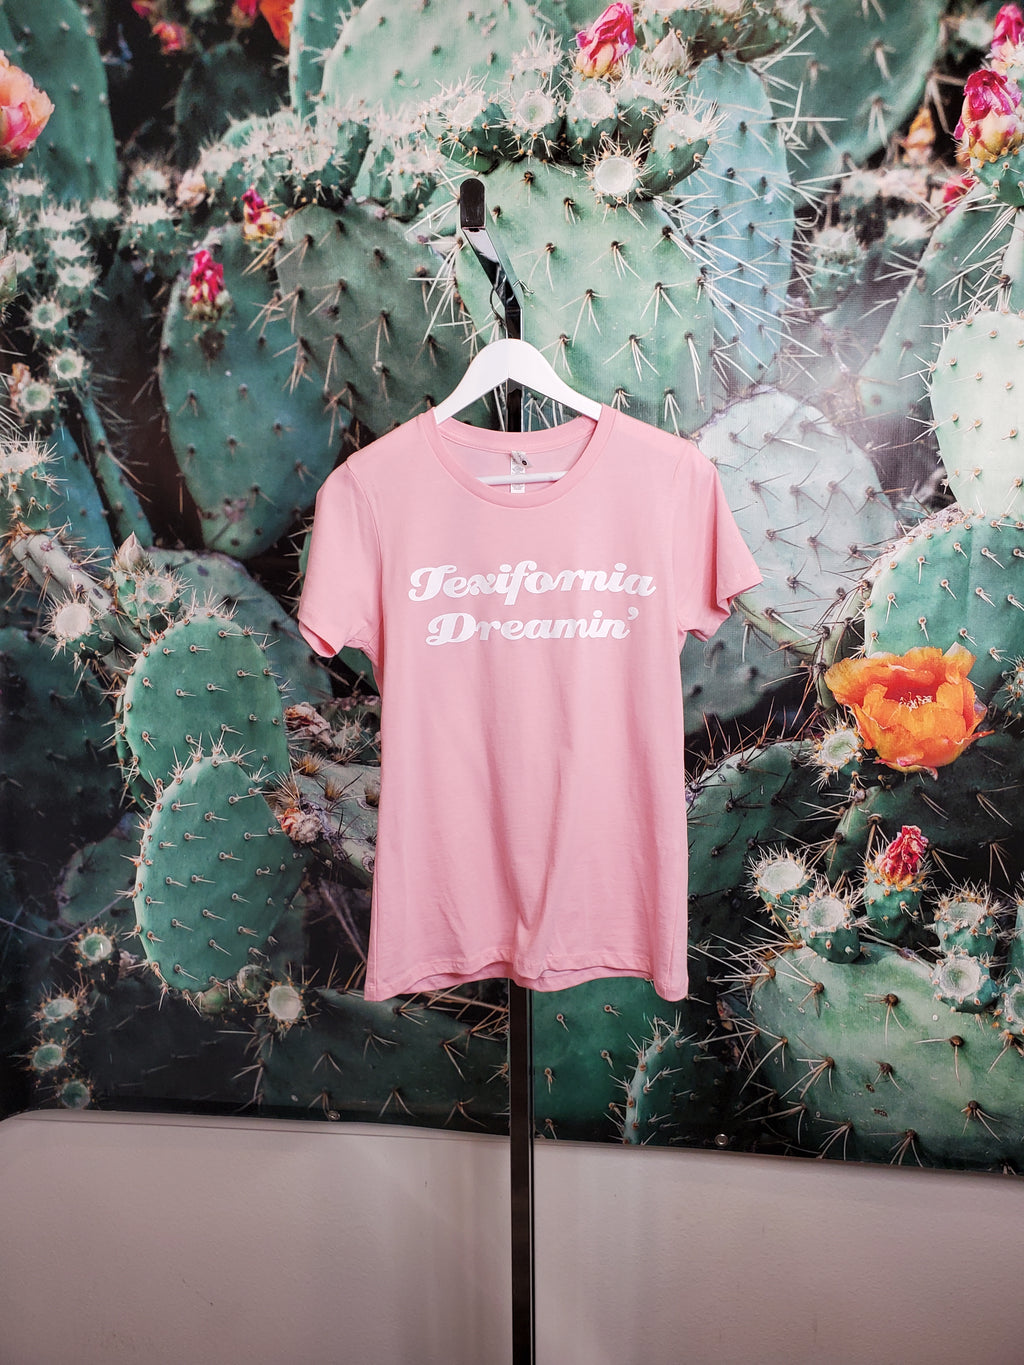 TEXIFORNIA DREAMIN' WOMENS SHIRT